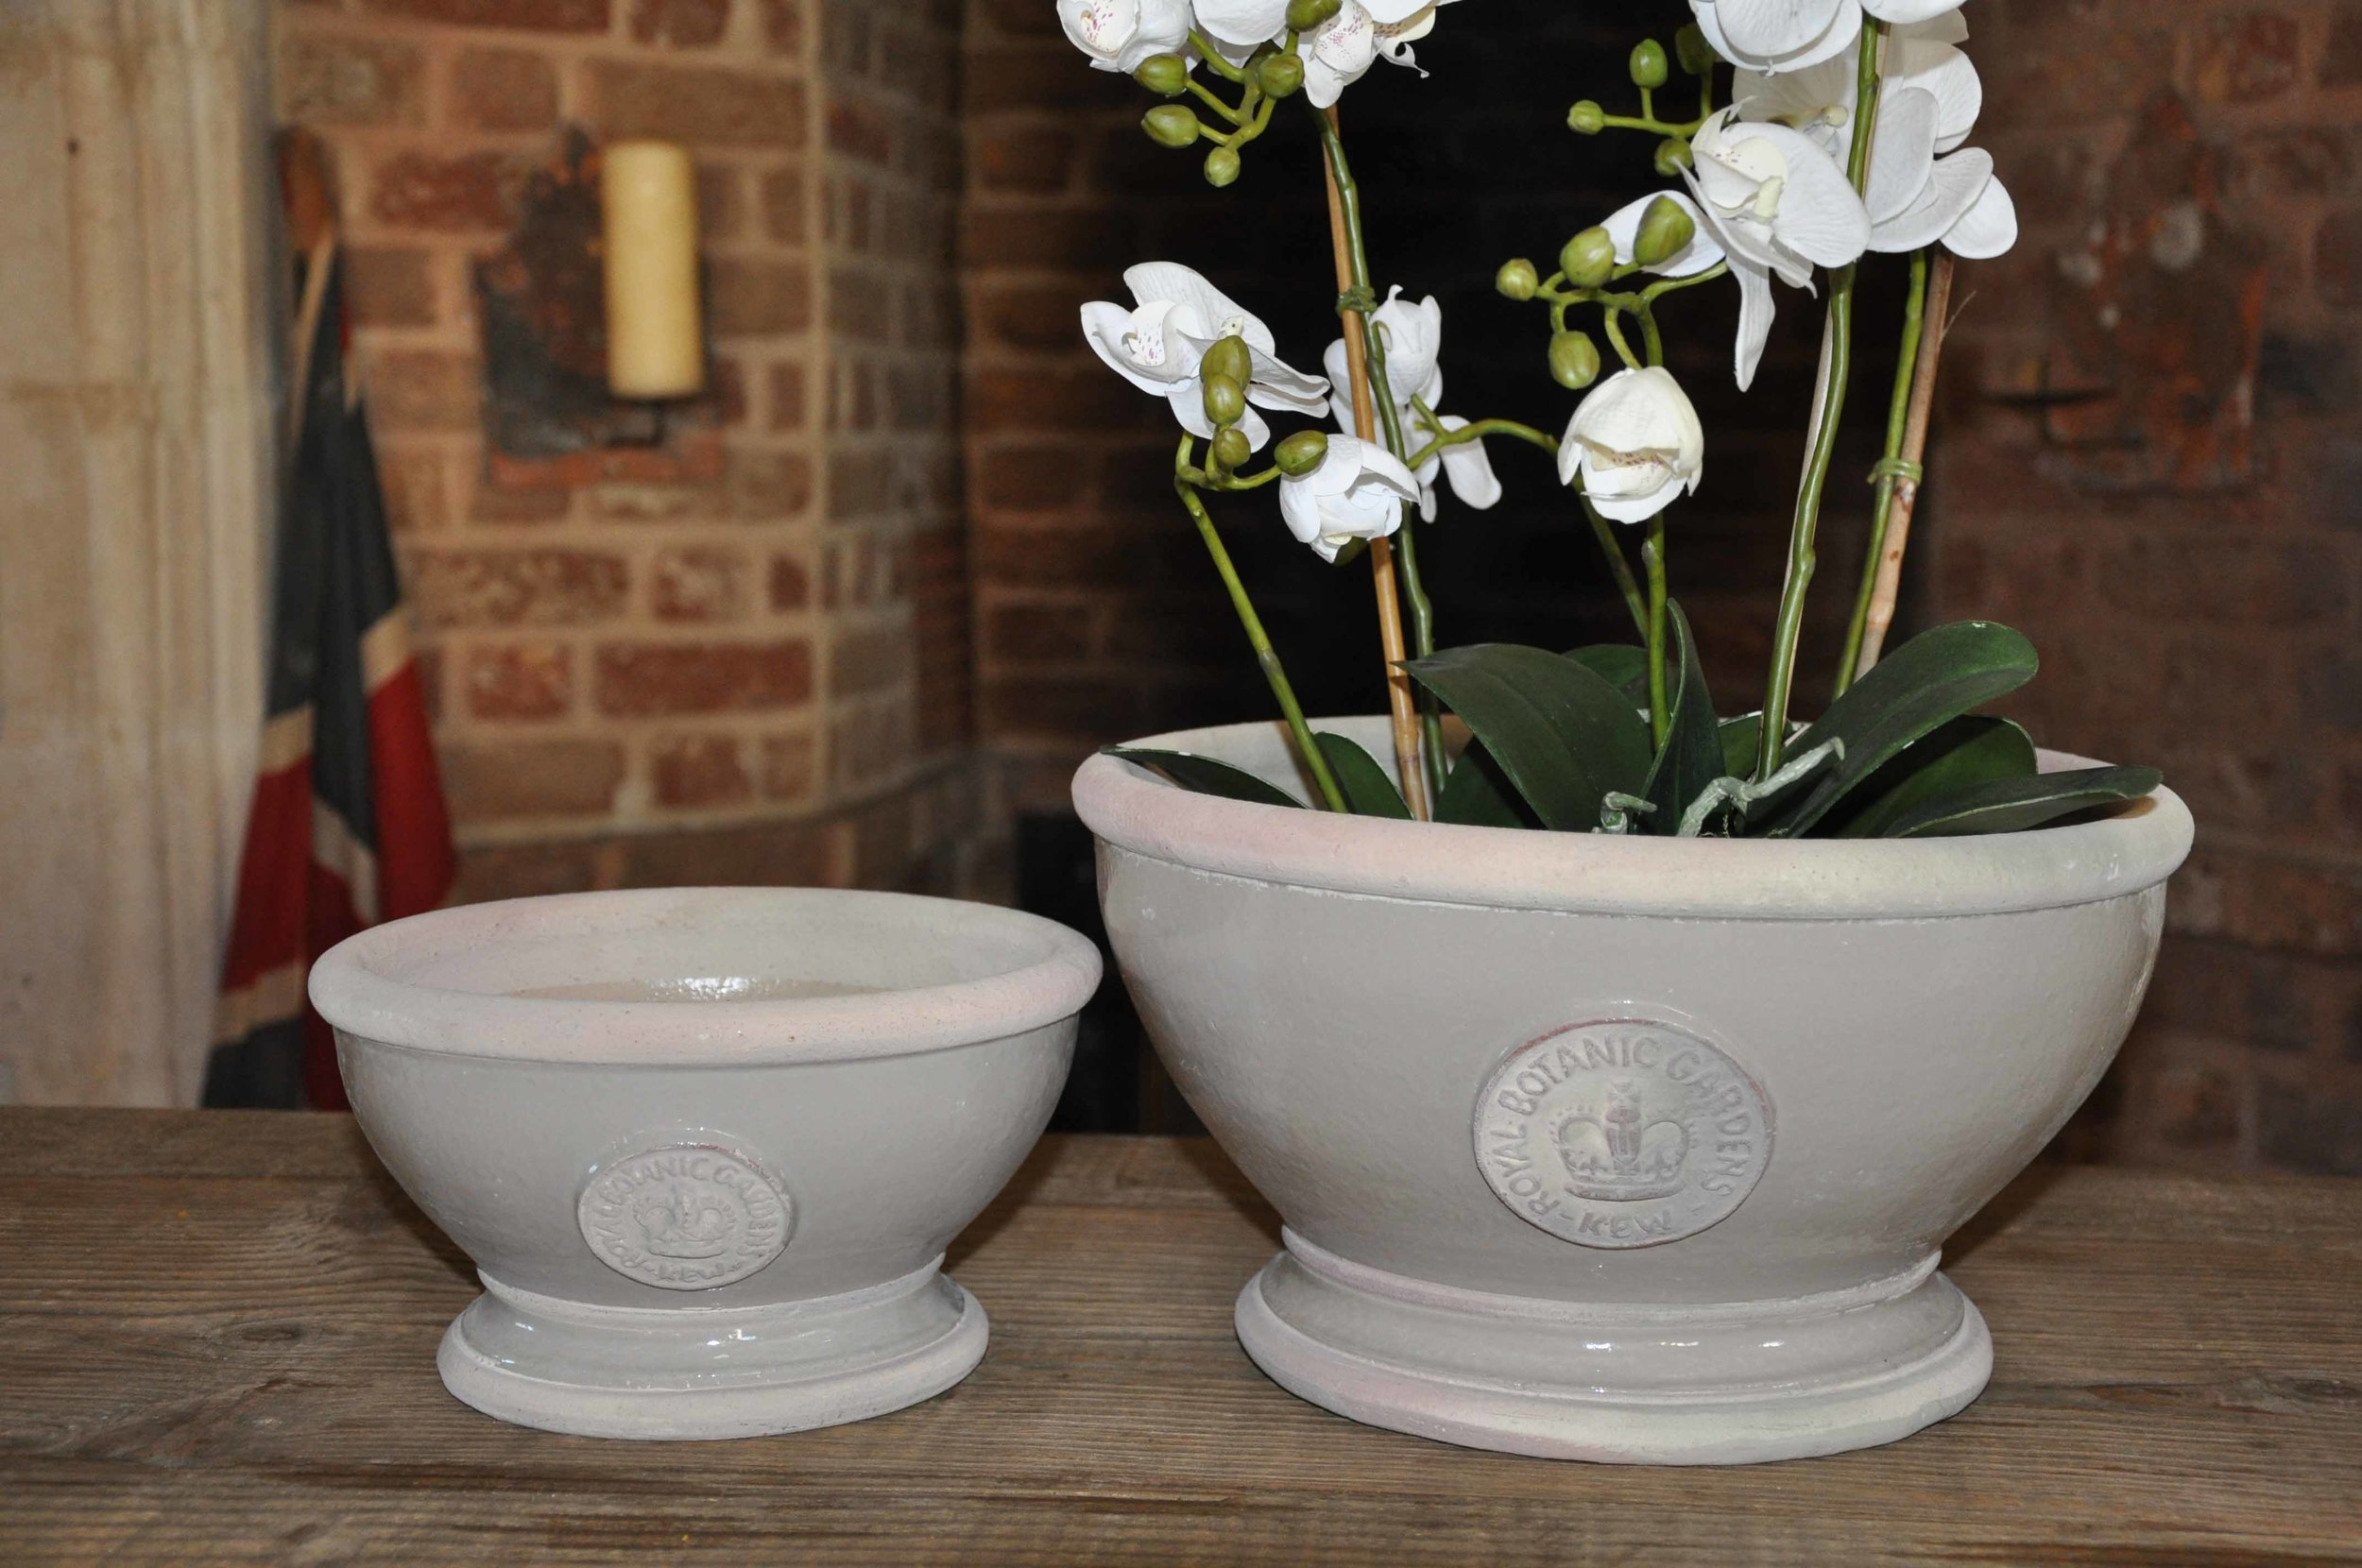 Large footed bowl H: 18.5 x W: 30.2cm - £42  Small H: 12.5 x W: 23cm - £28